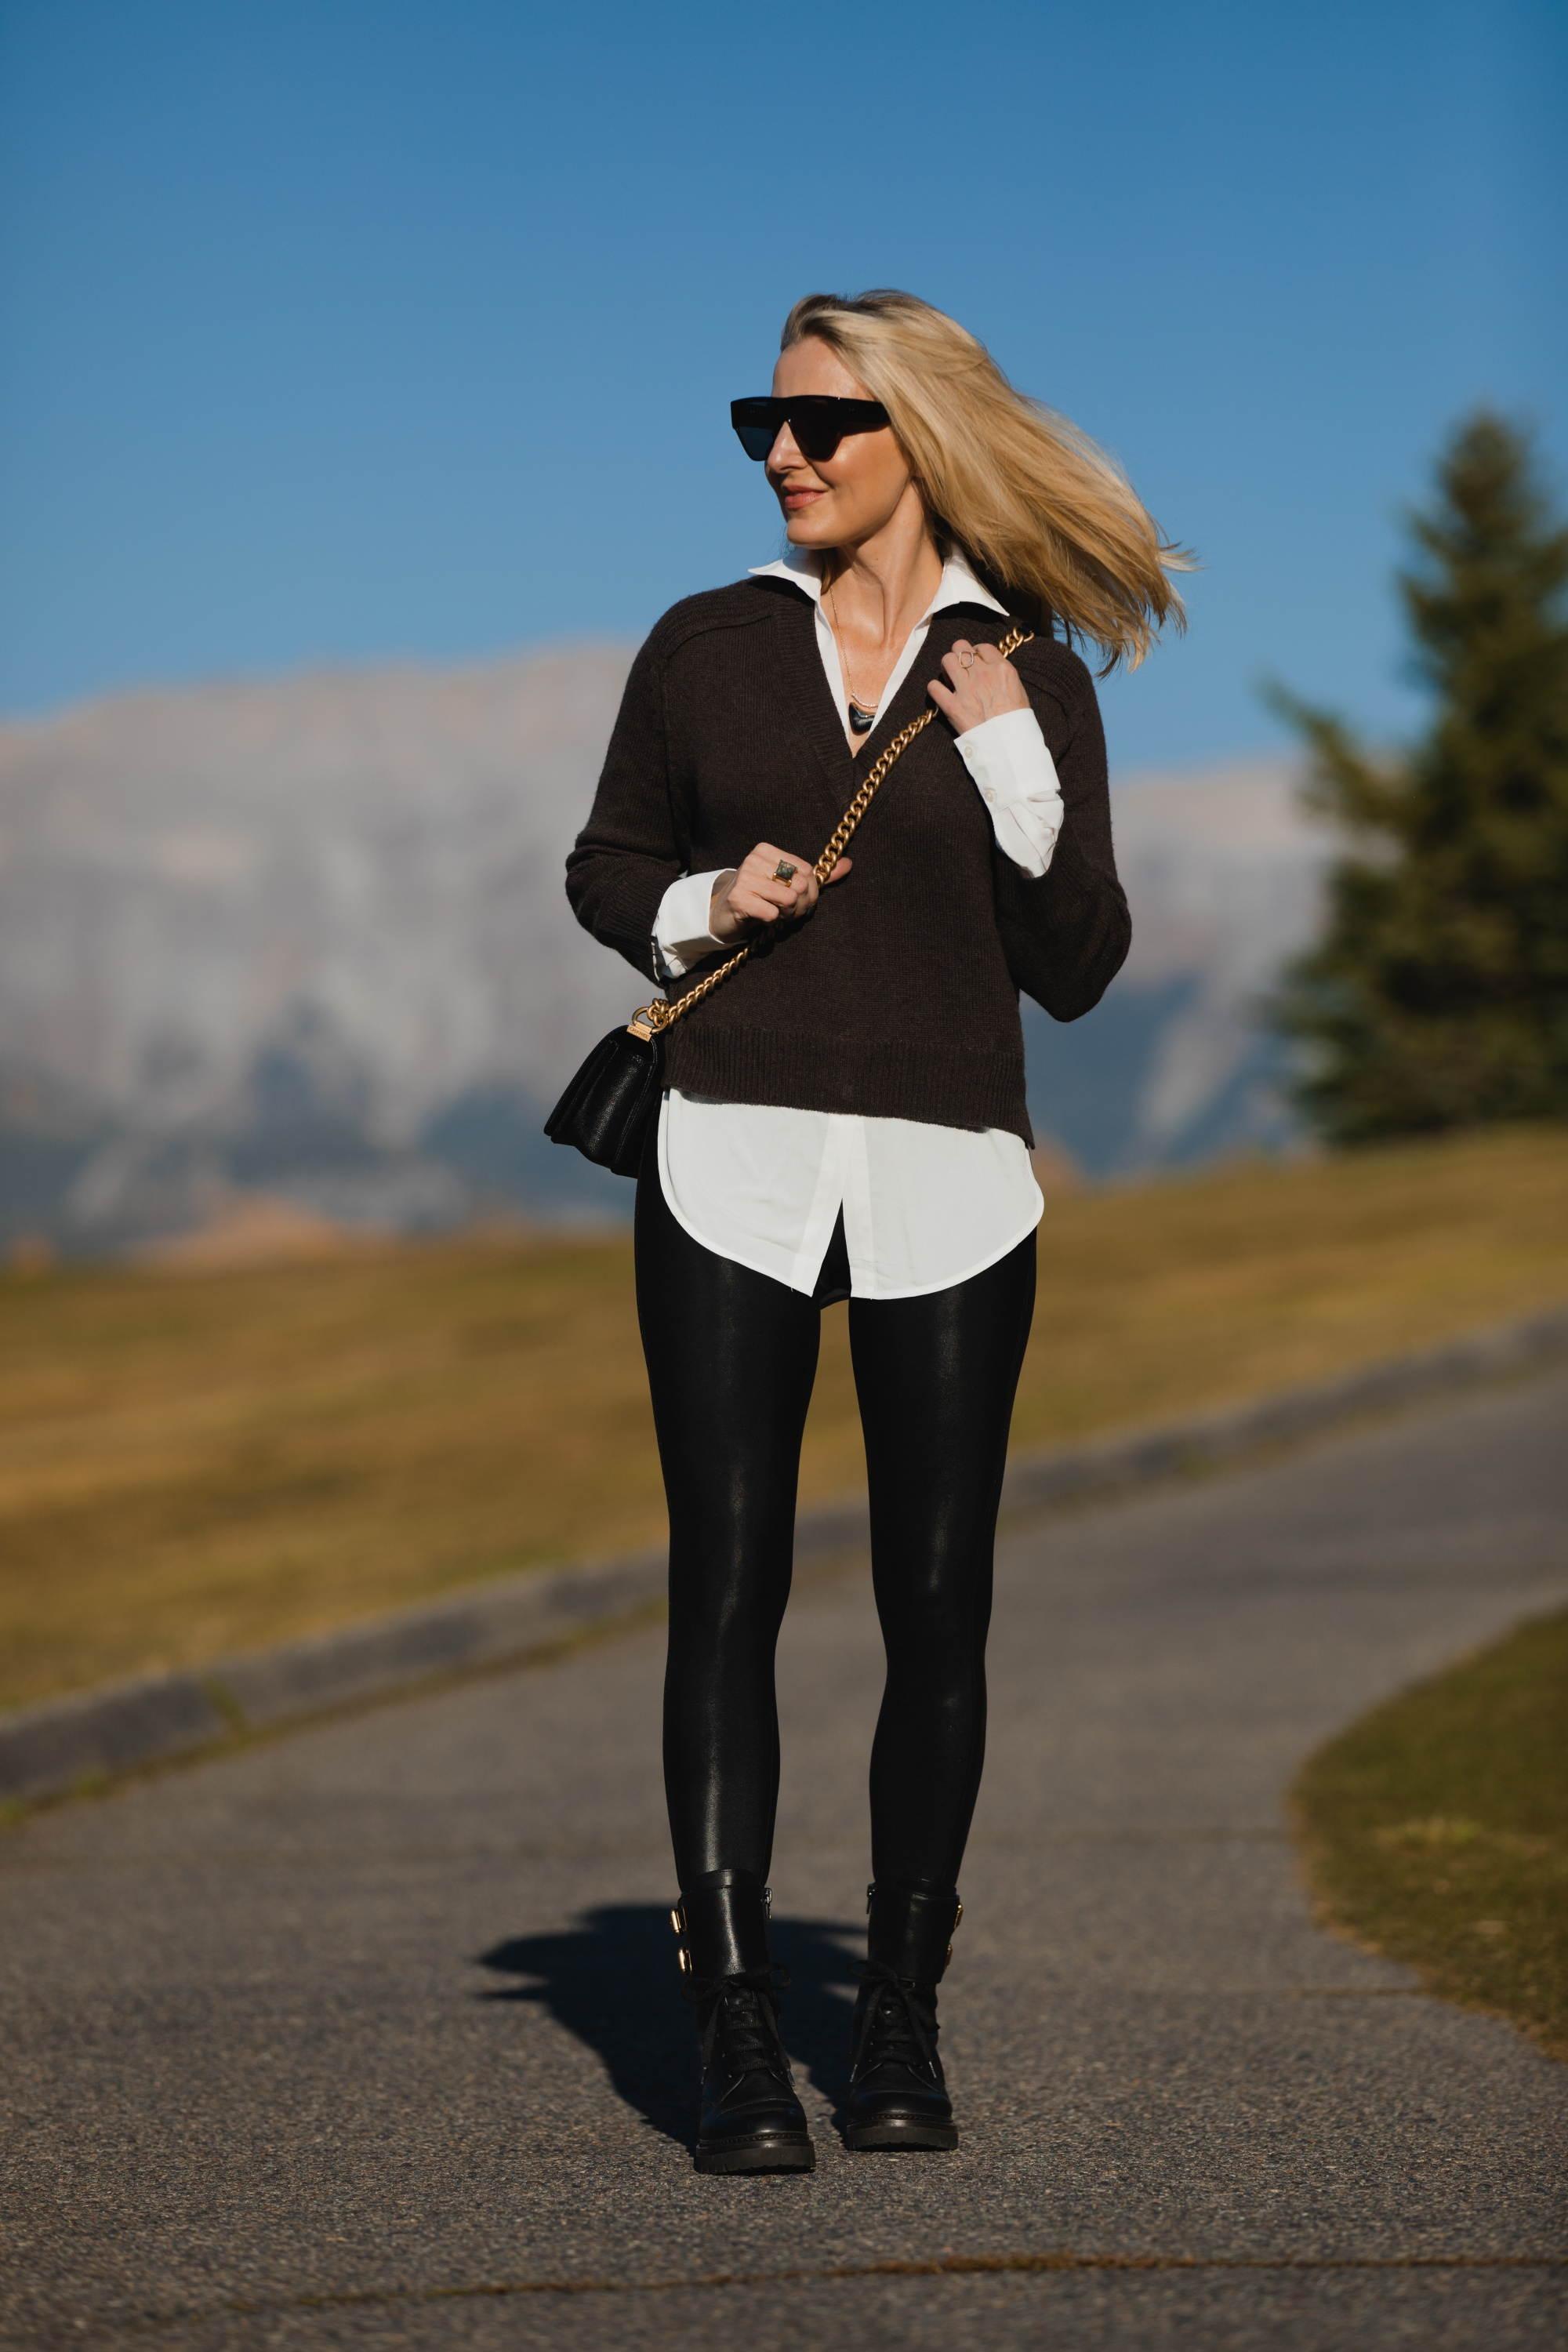 Layered Sweater, Erin Busbee of Busbee Style wearing a brown layered sweater by Brochu Walker, Spanx faux leather leggings, See by Chloe combat boots, and black Chanel boy bag in Telluride, Colorado